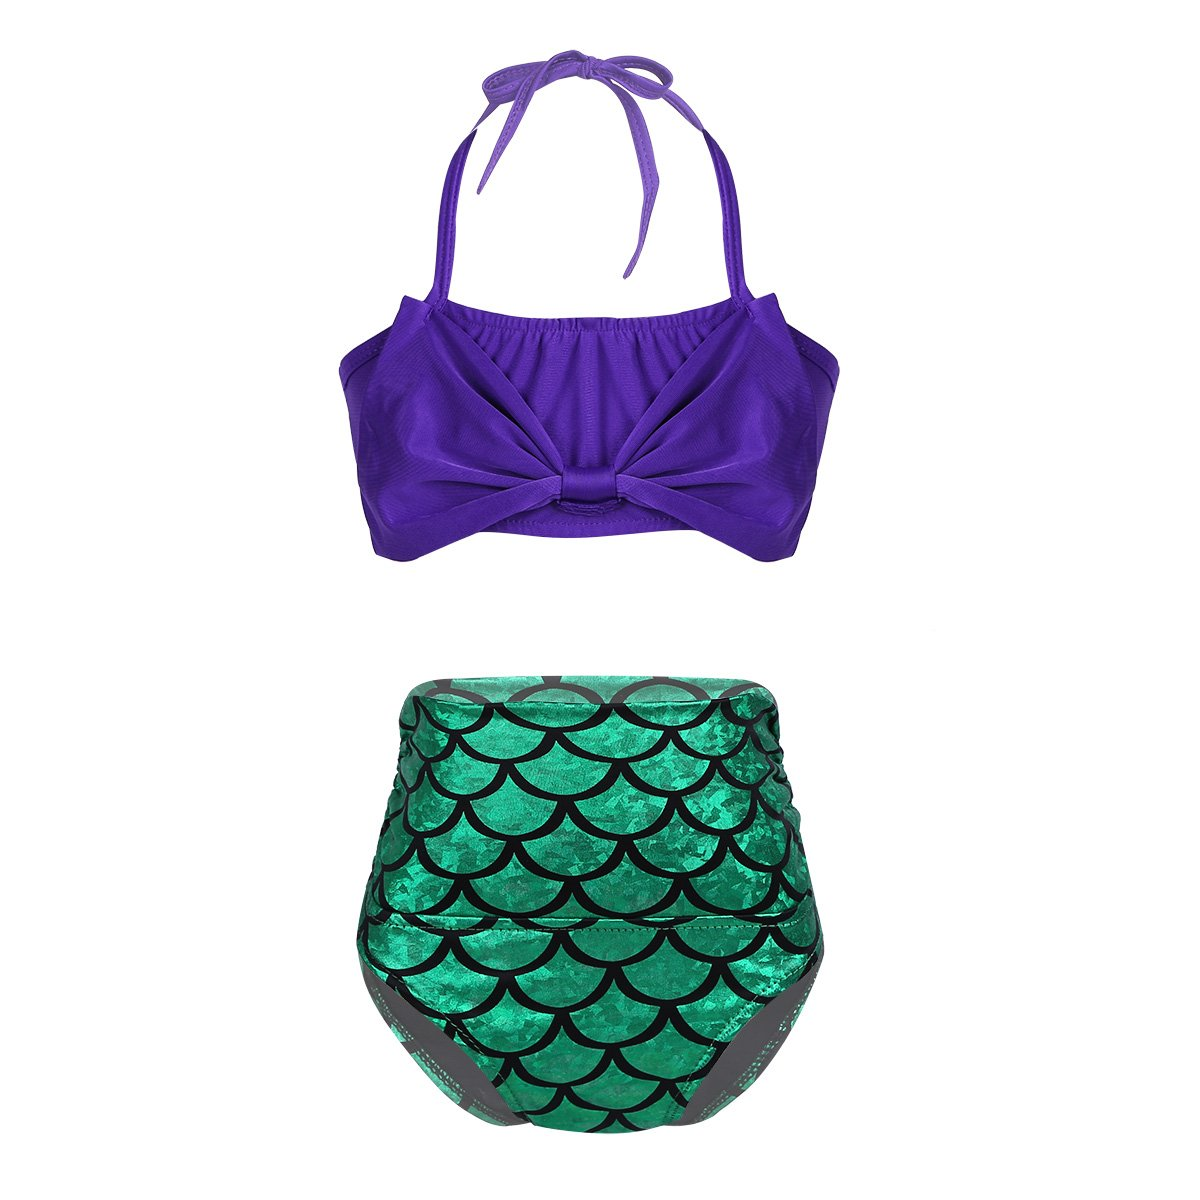 dPois Girls' Two-Pieces Mermaid Tankini Swimsuit Beachwear Halter Bowknot Tops with Fish Scale Bottoms Purple&Green 8-10 by dPois